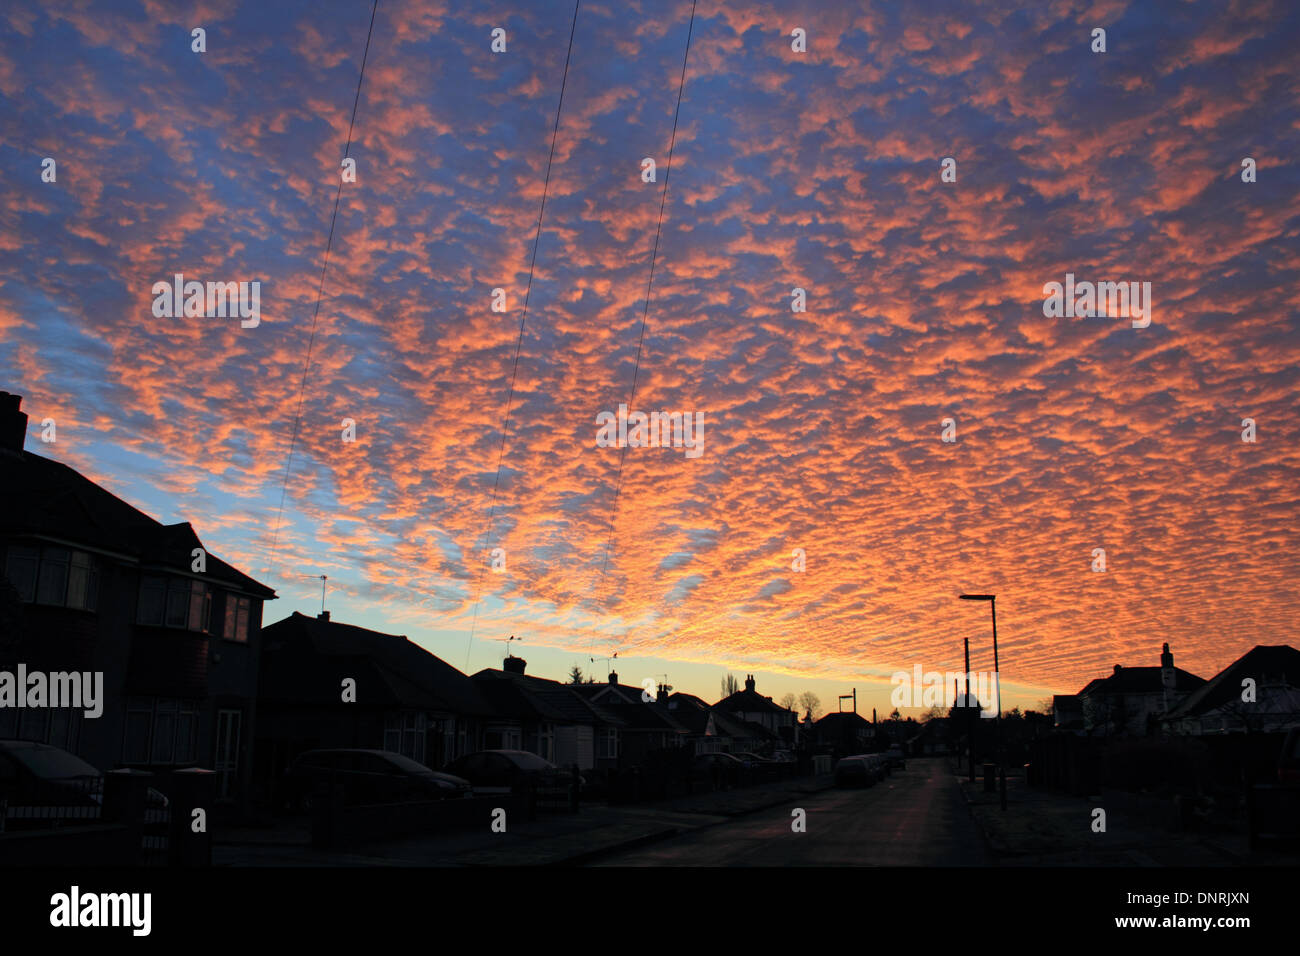 Epsom, Surrey, UK. 5th January 2014. Red sky in the morning - shepherds warning! Could the old English saying be a sign of the weather to come? Spectacular altocumulus mackerel cloud formations at sunrise over Surrey. Credit:  Julia Gavin/Alamy Live News - Stock Image